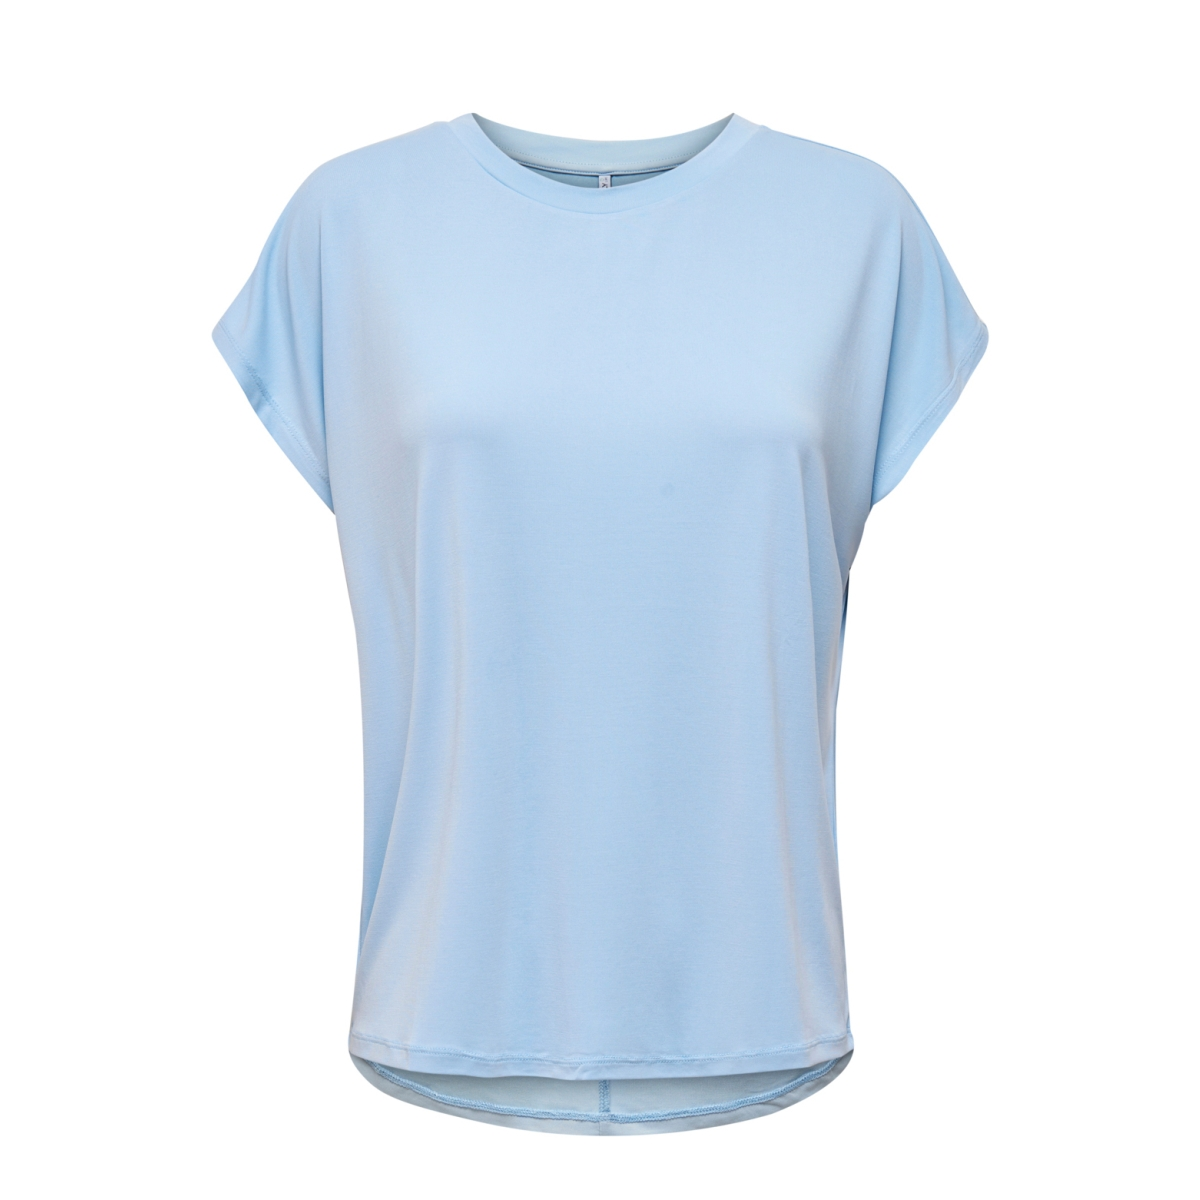 onlfree life s/s o-neck top noos jr 15199102 only t-shirt cashmere blue